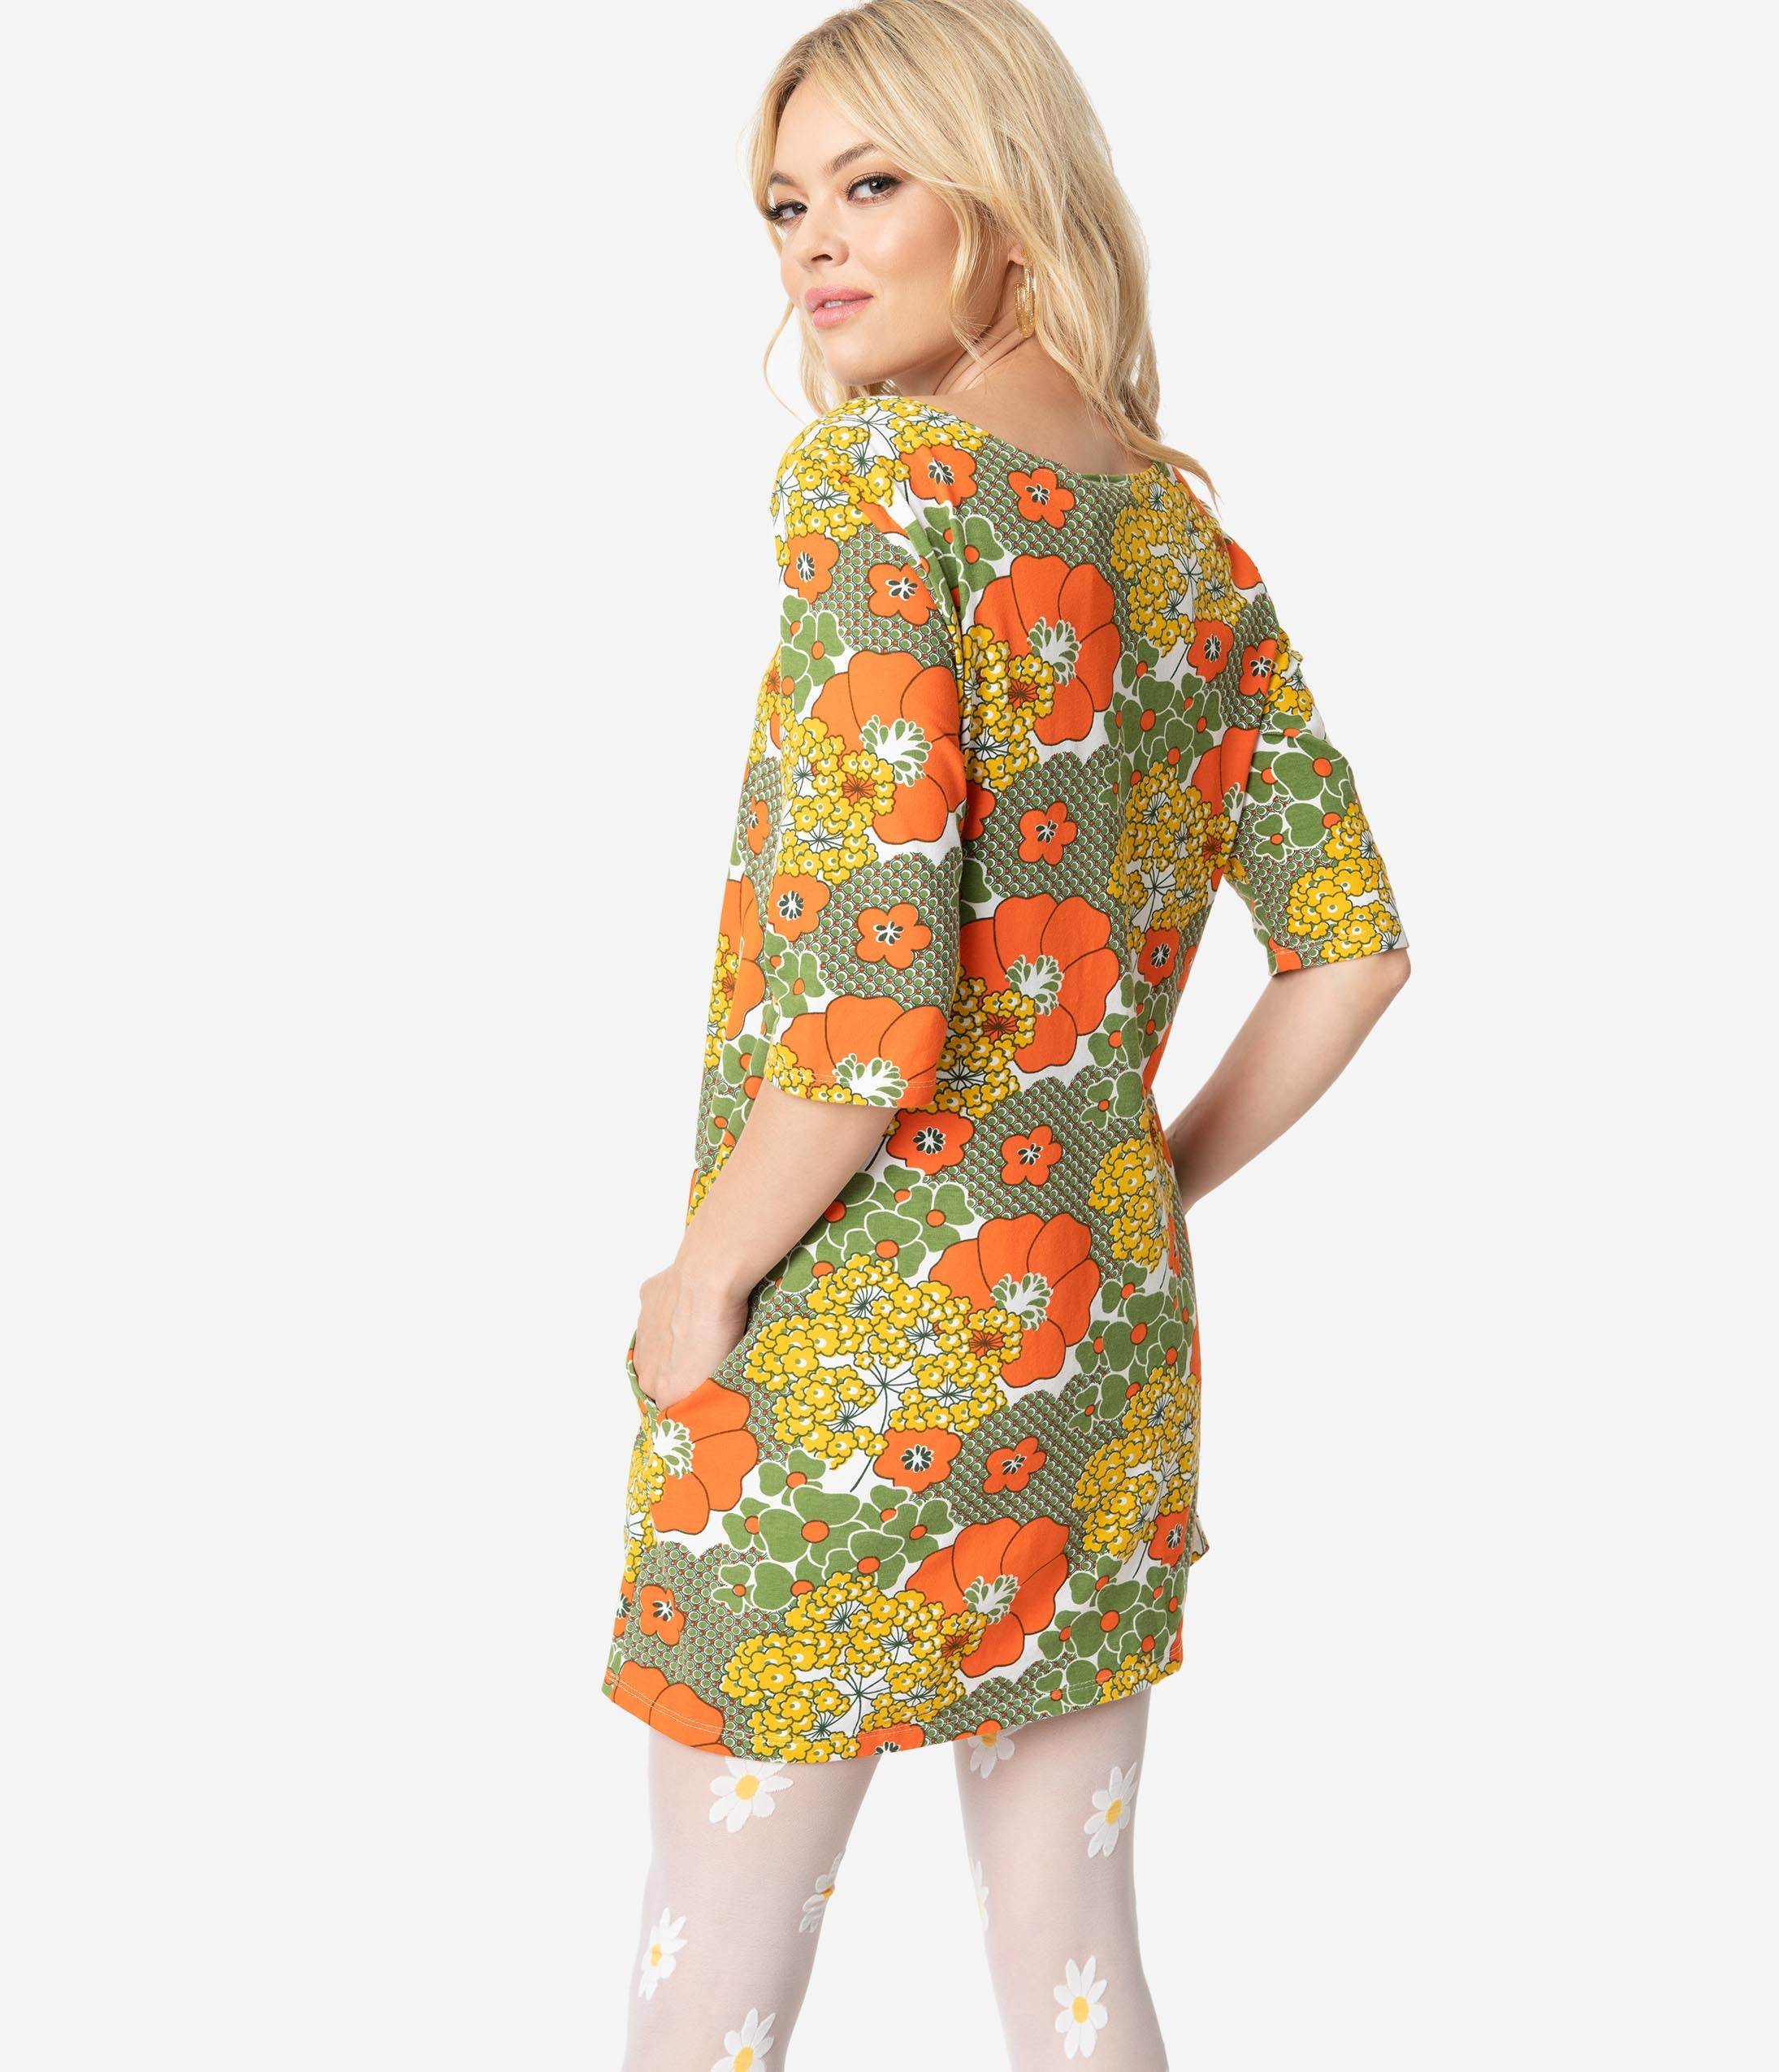 49689c6c89 1960s Style Olive Green & Orange Retro Floral Print Cotton Tunic Dress